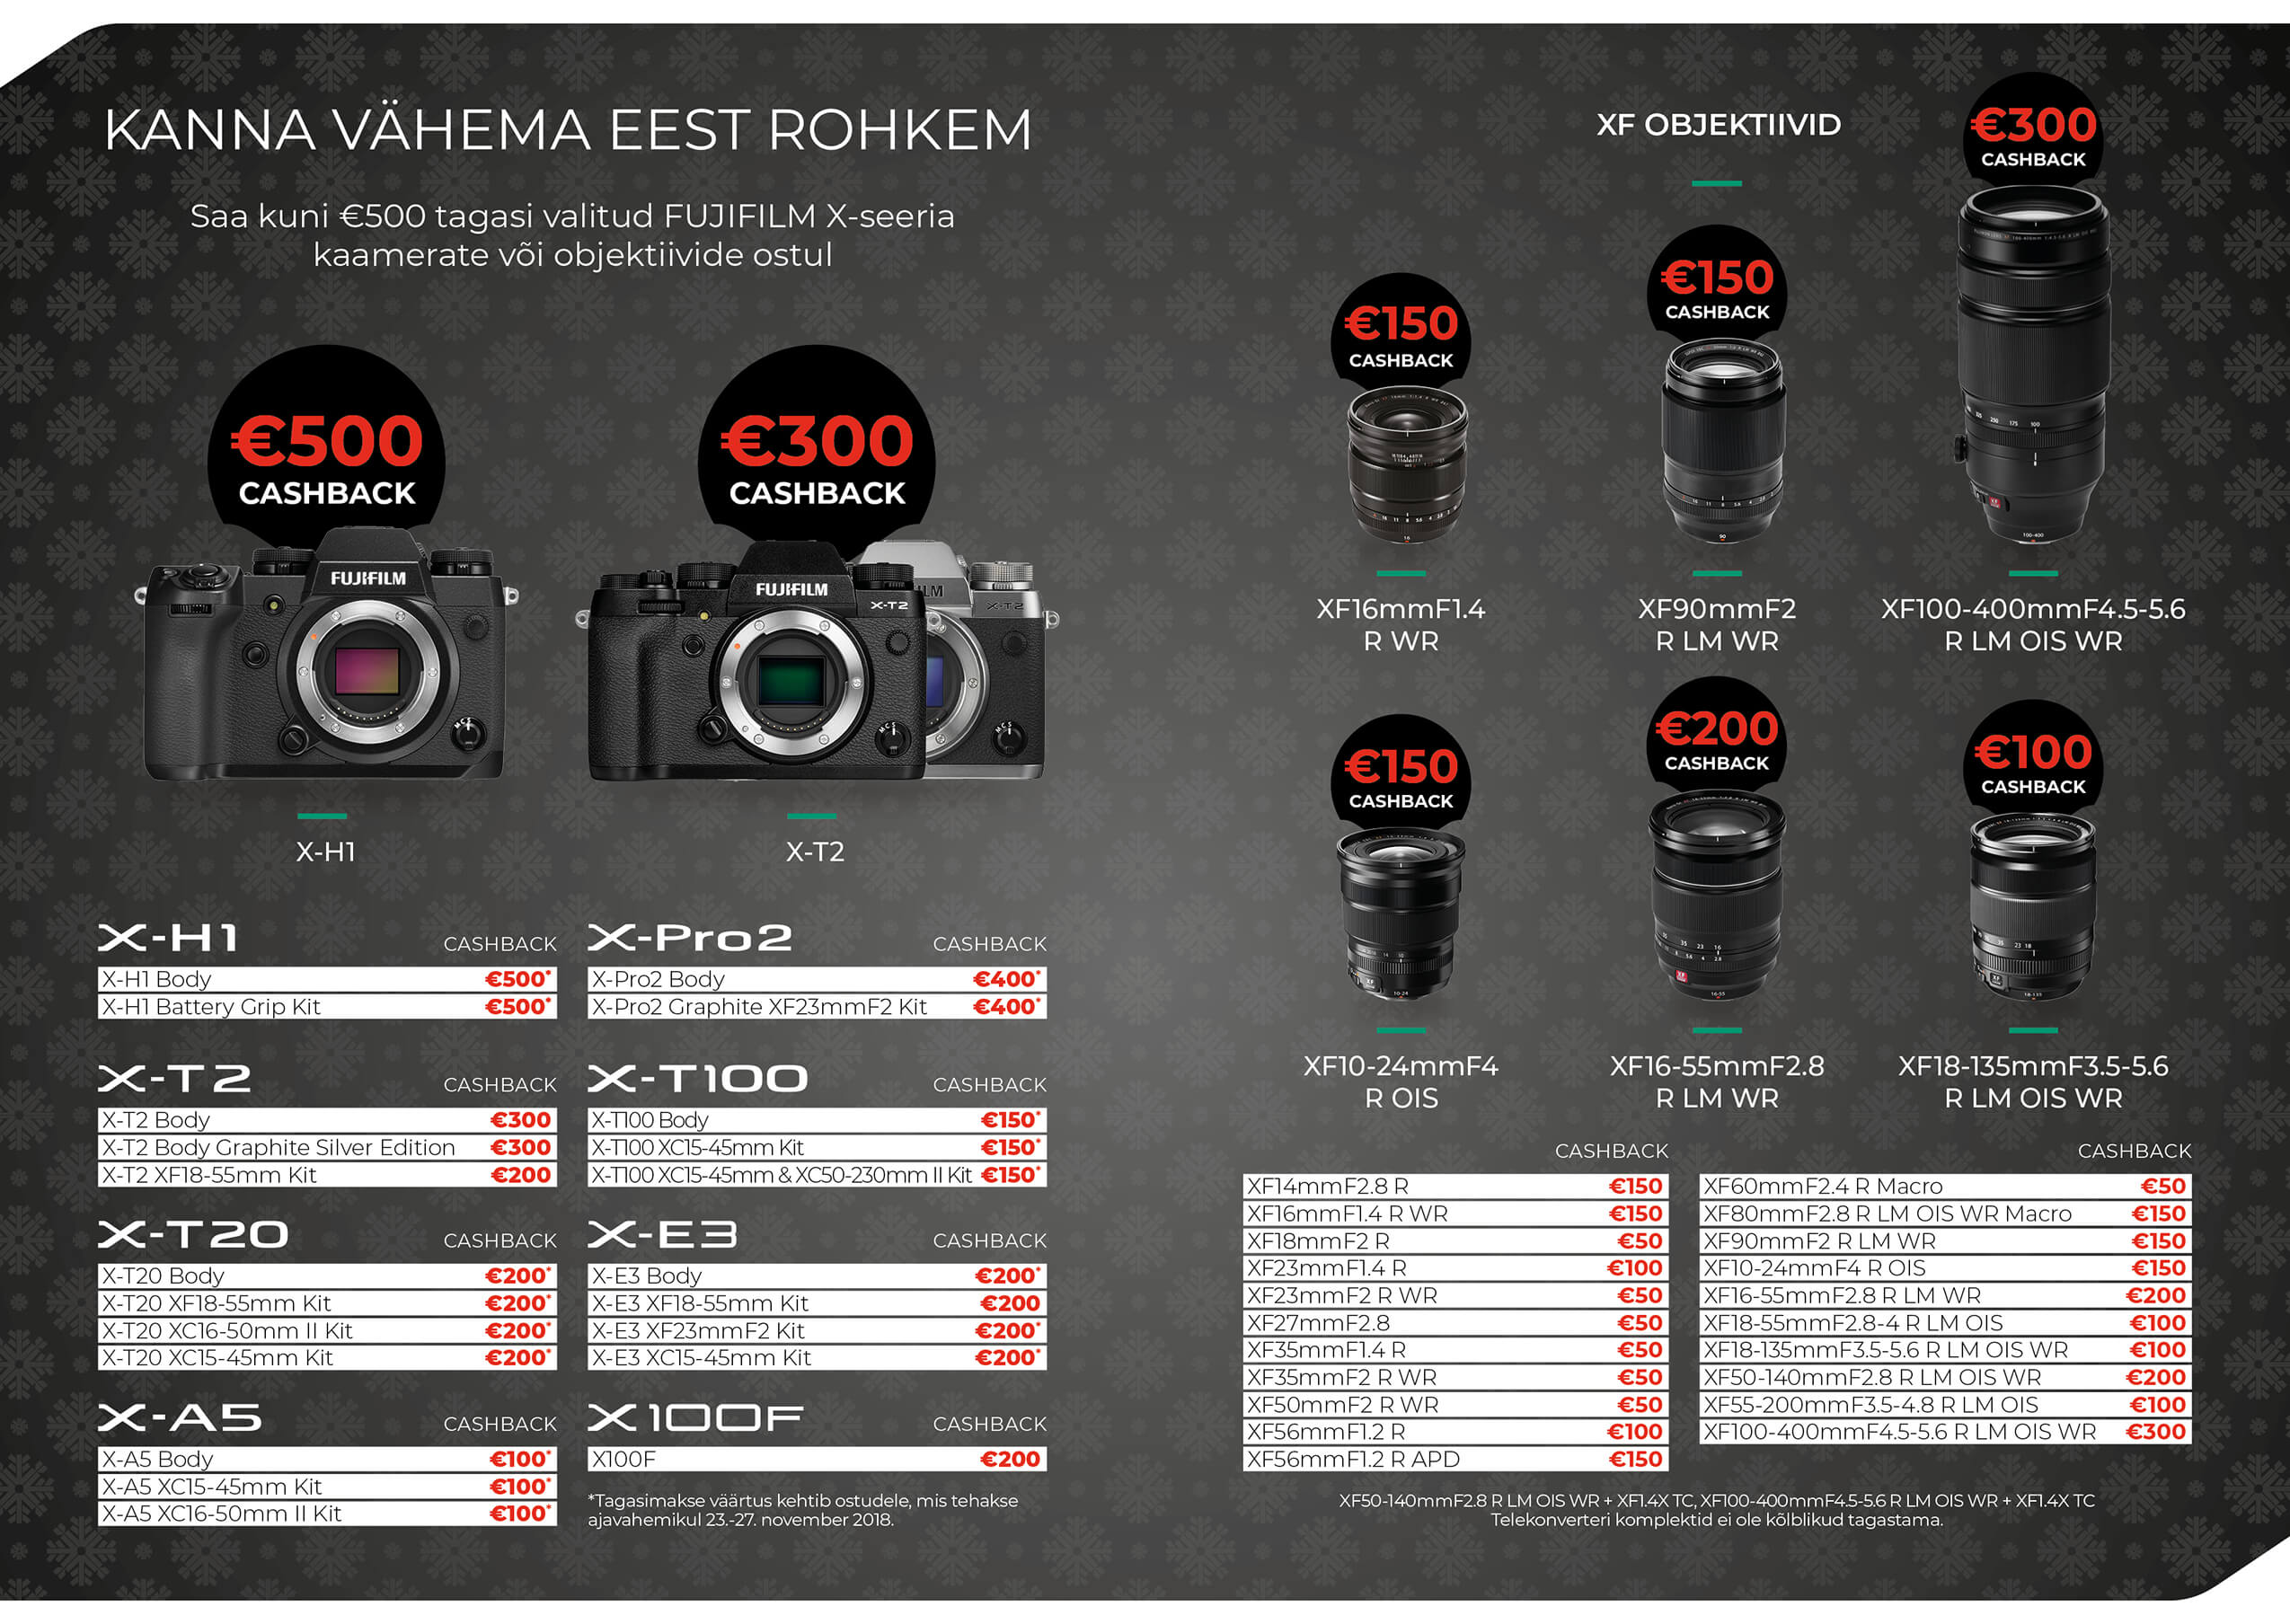 fujifilm-winter-cashback-photopooint-black-friday